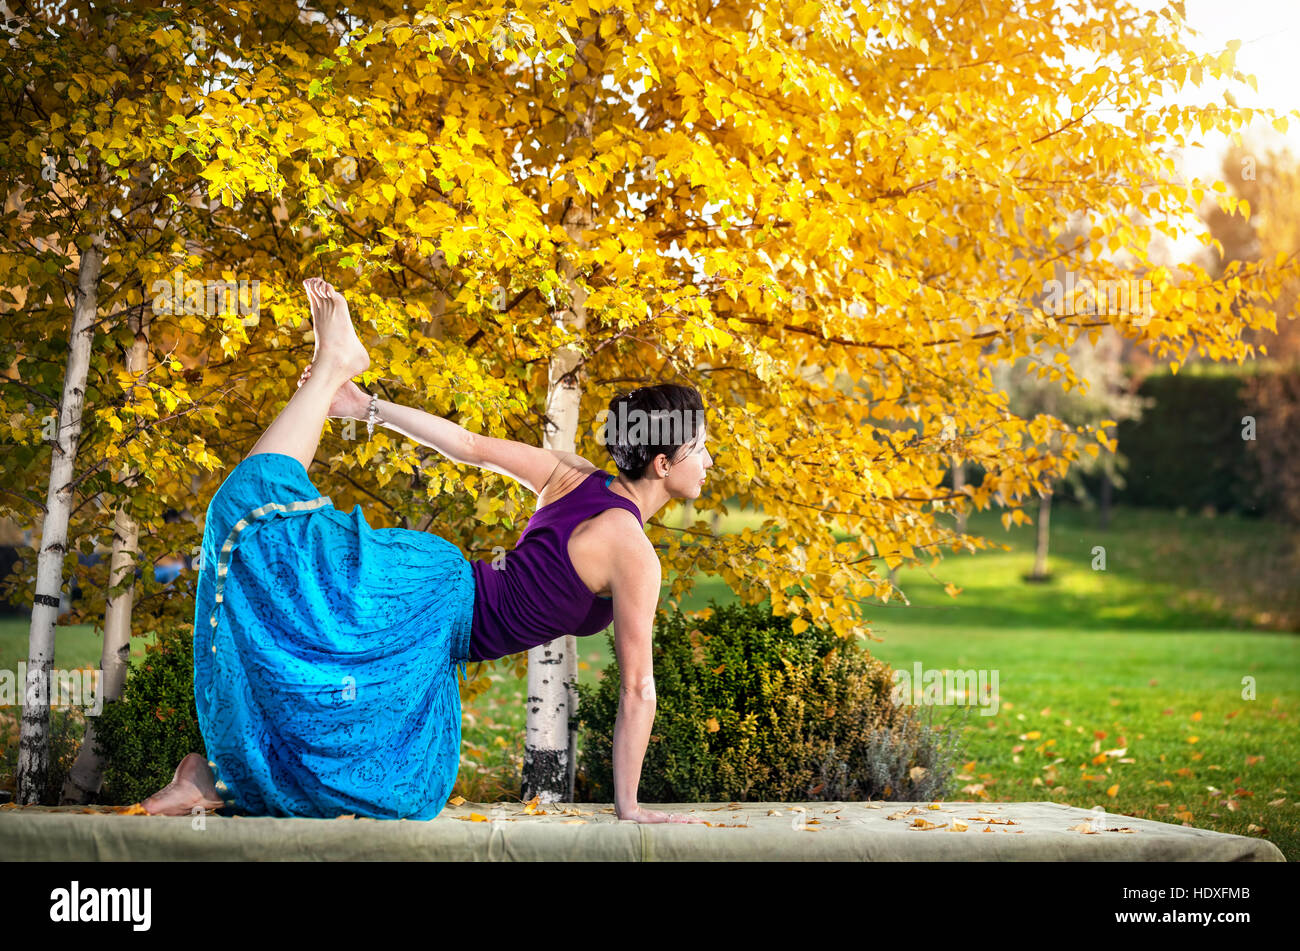 Young woman doing yoga in autumn city park near yellow birch trees - Stock Image